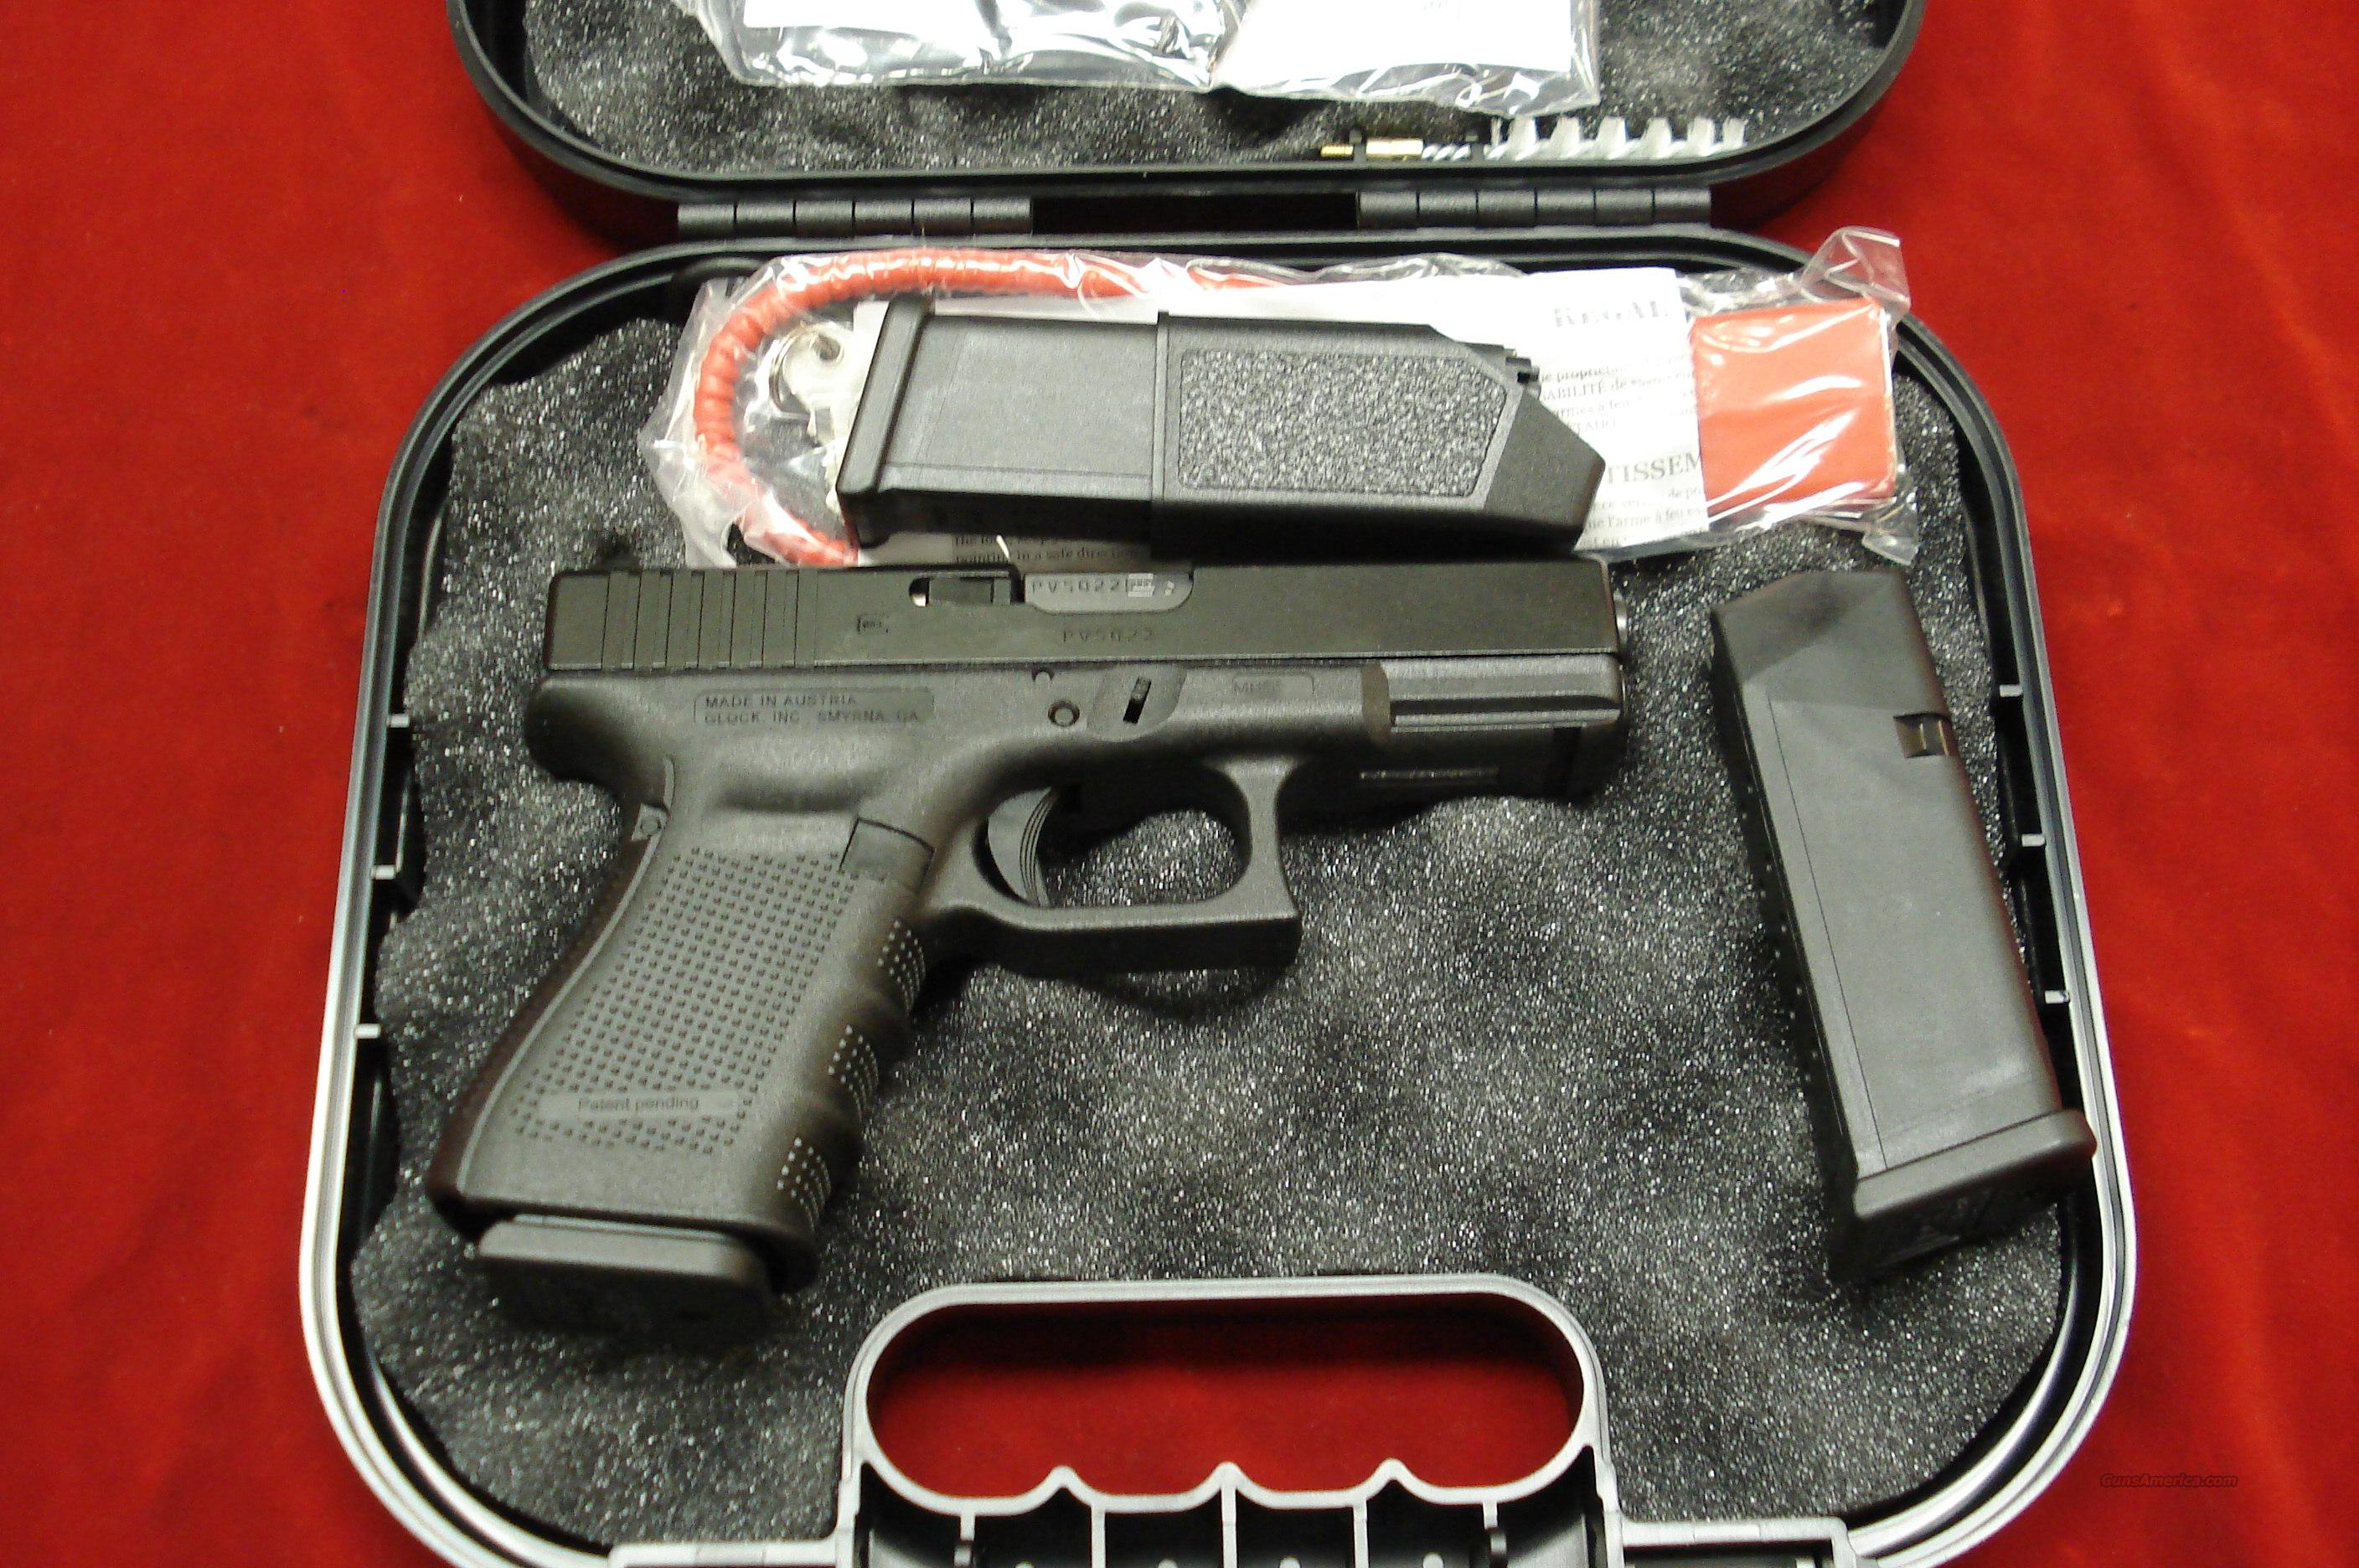 GLOCK NEW MODEL 23 GENERATION 4 .40 CAL. WITH 3 HIGH CAPACITY MAGAZINES NEW  Guns > Pistols > Glock Pistols > 23